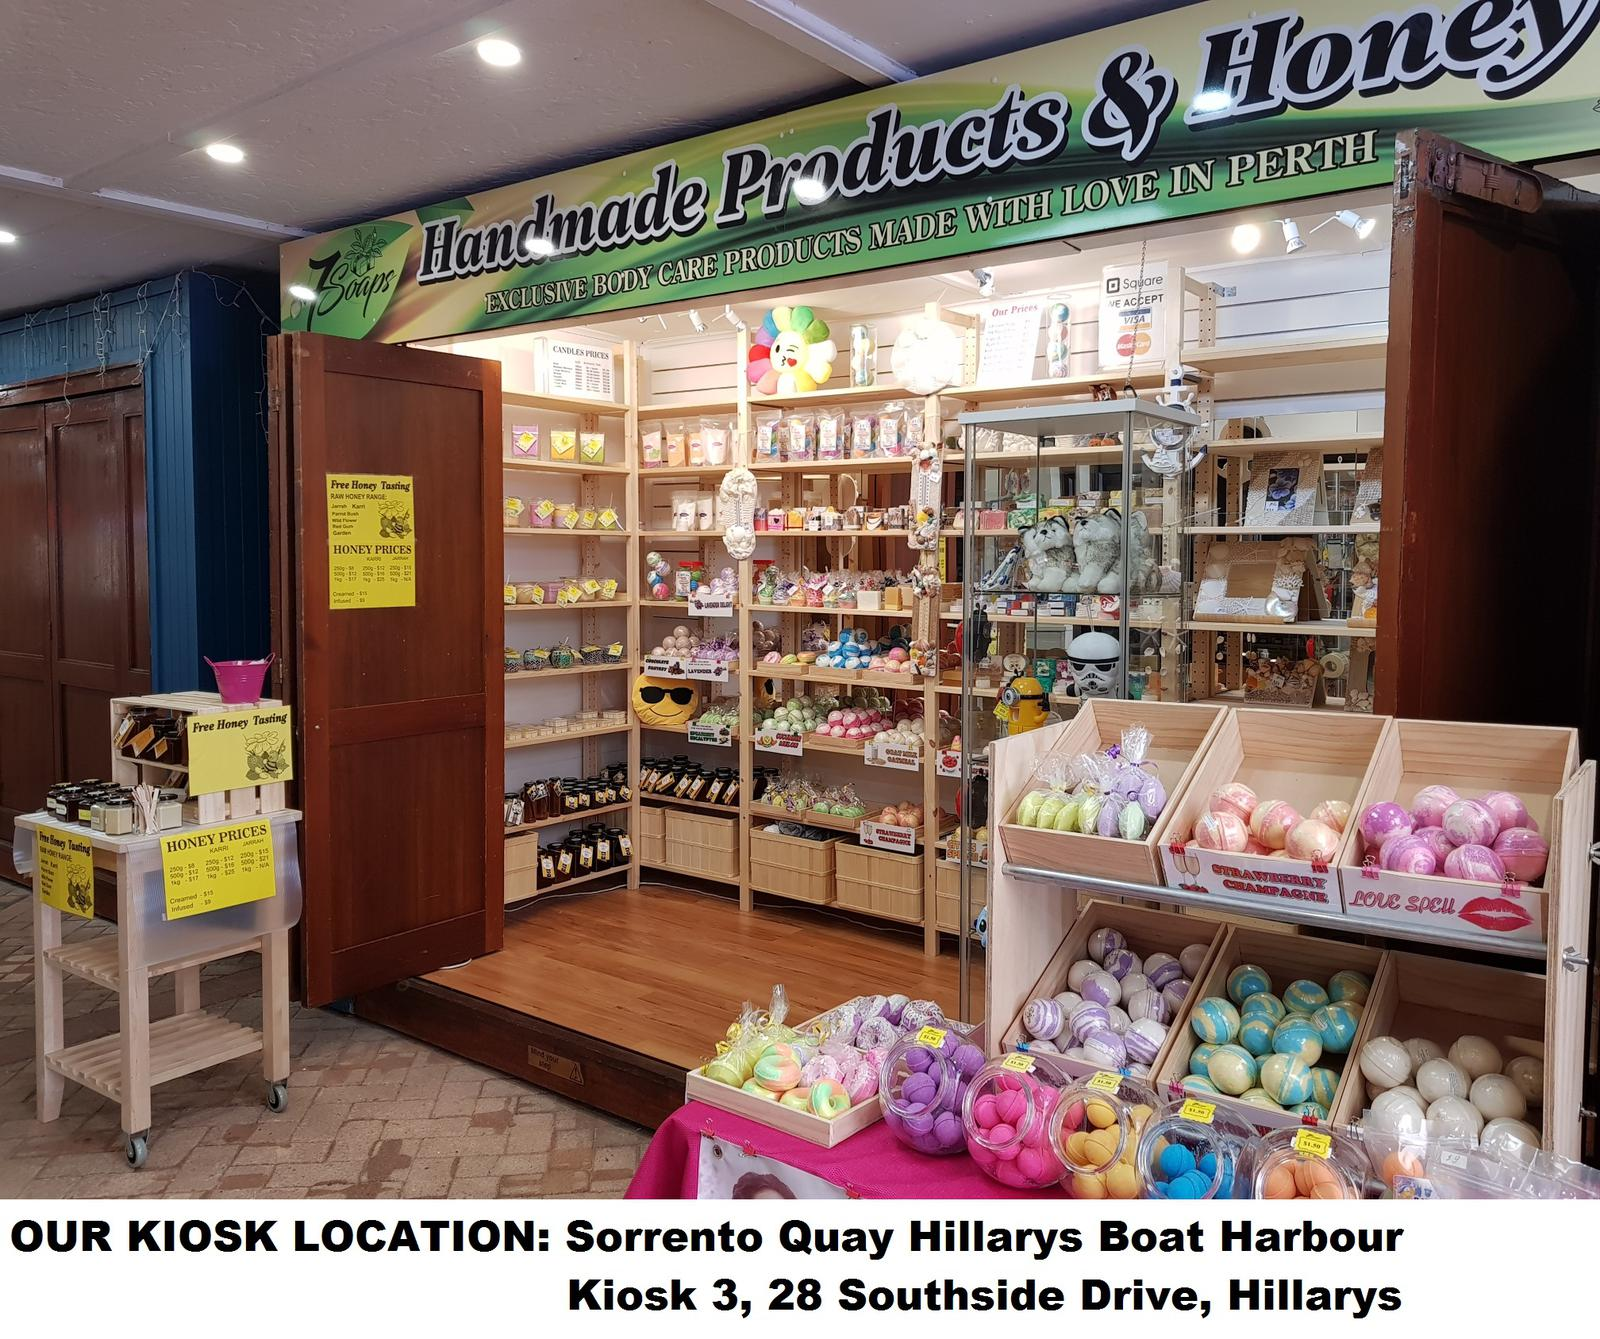 OUR KIOSK IN SORRENTO QUAY HILLARYS BOAT HARBOUR